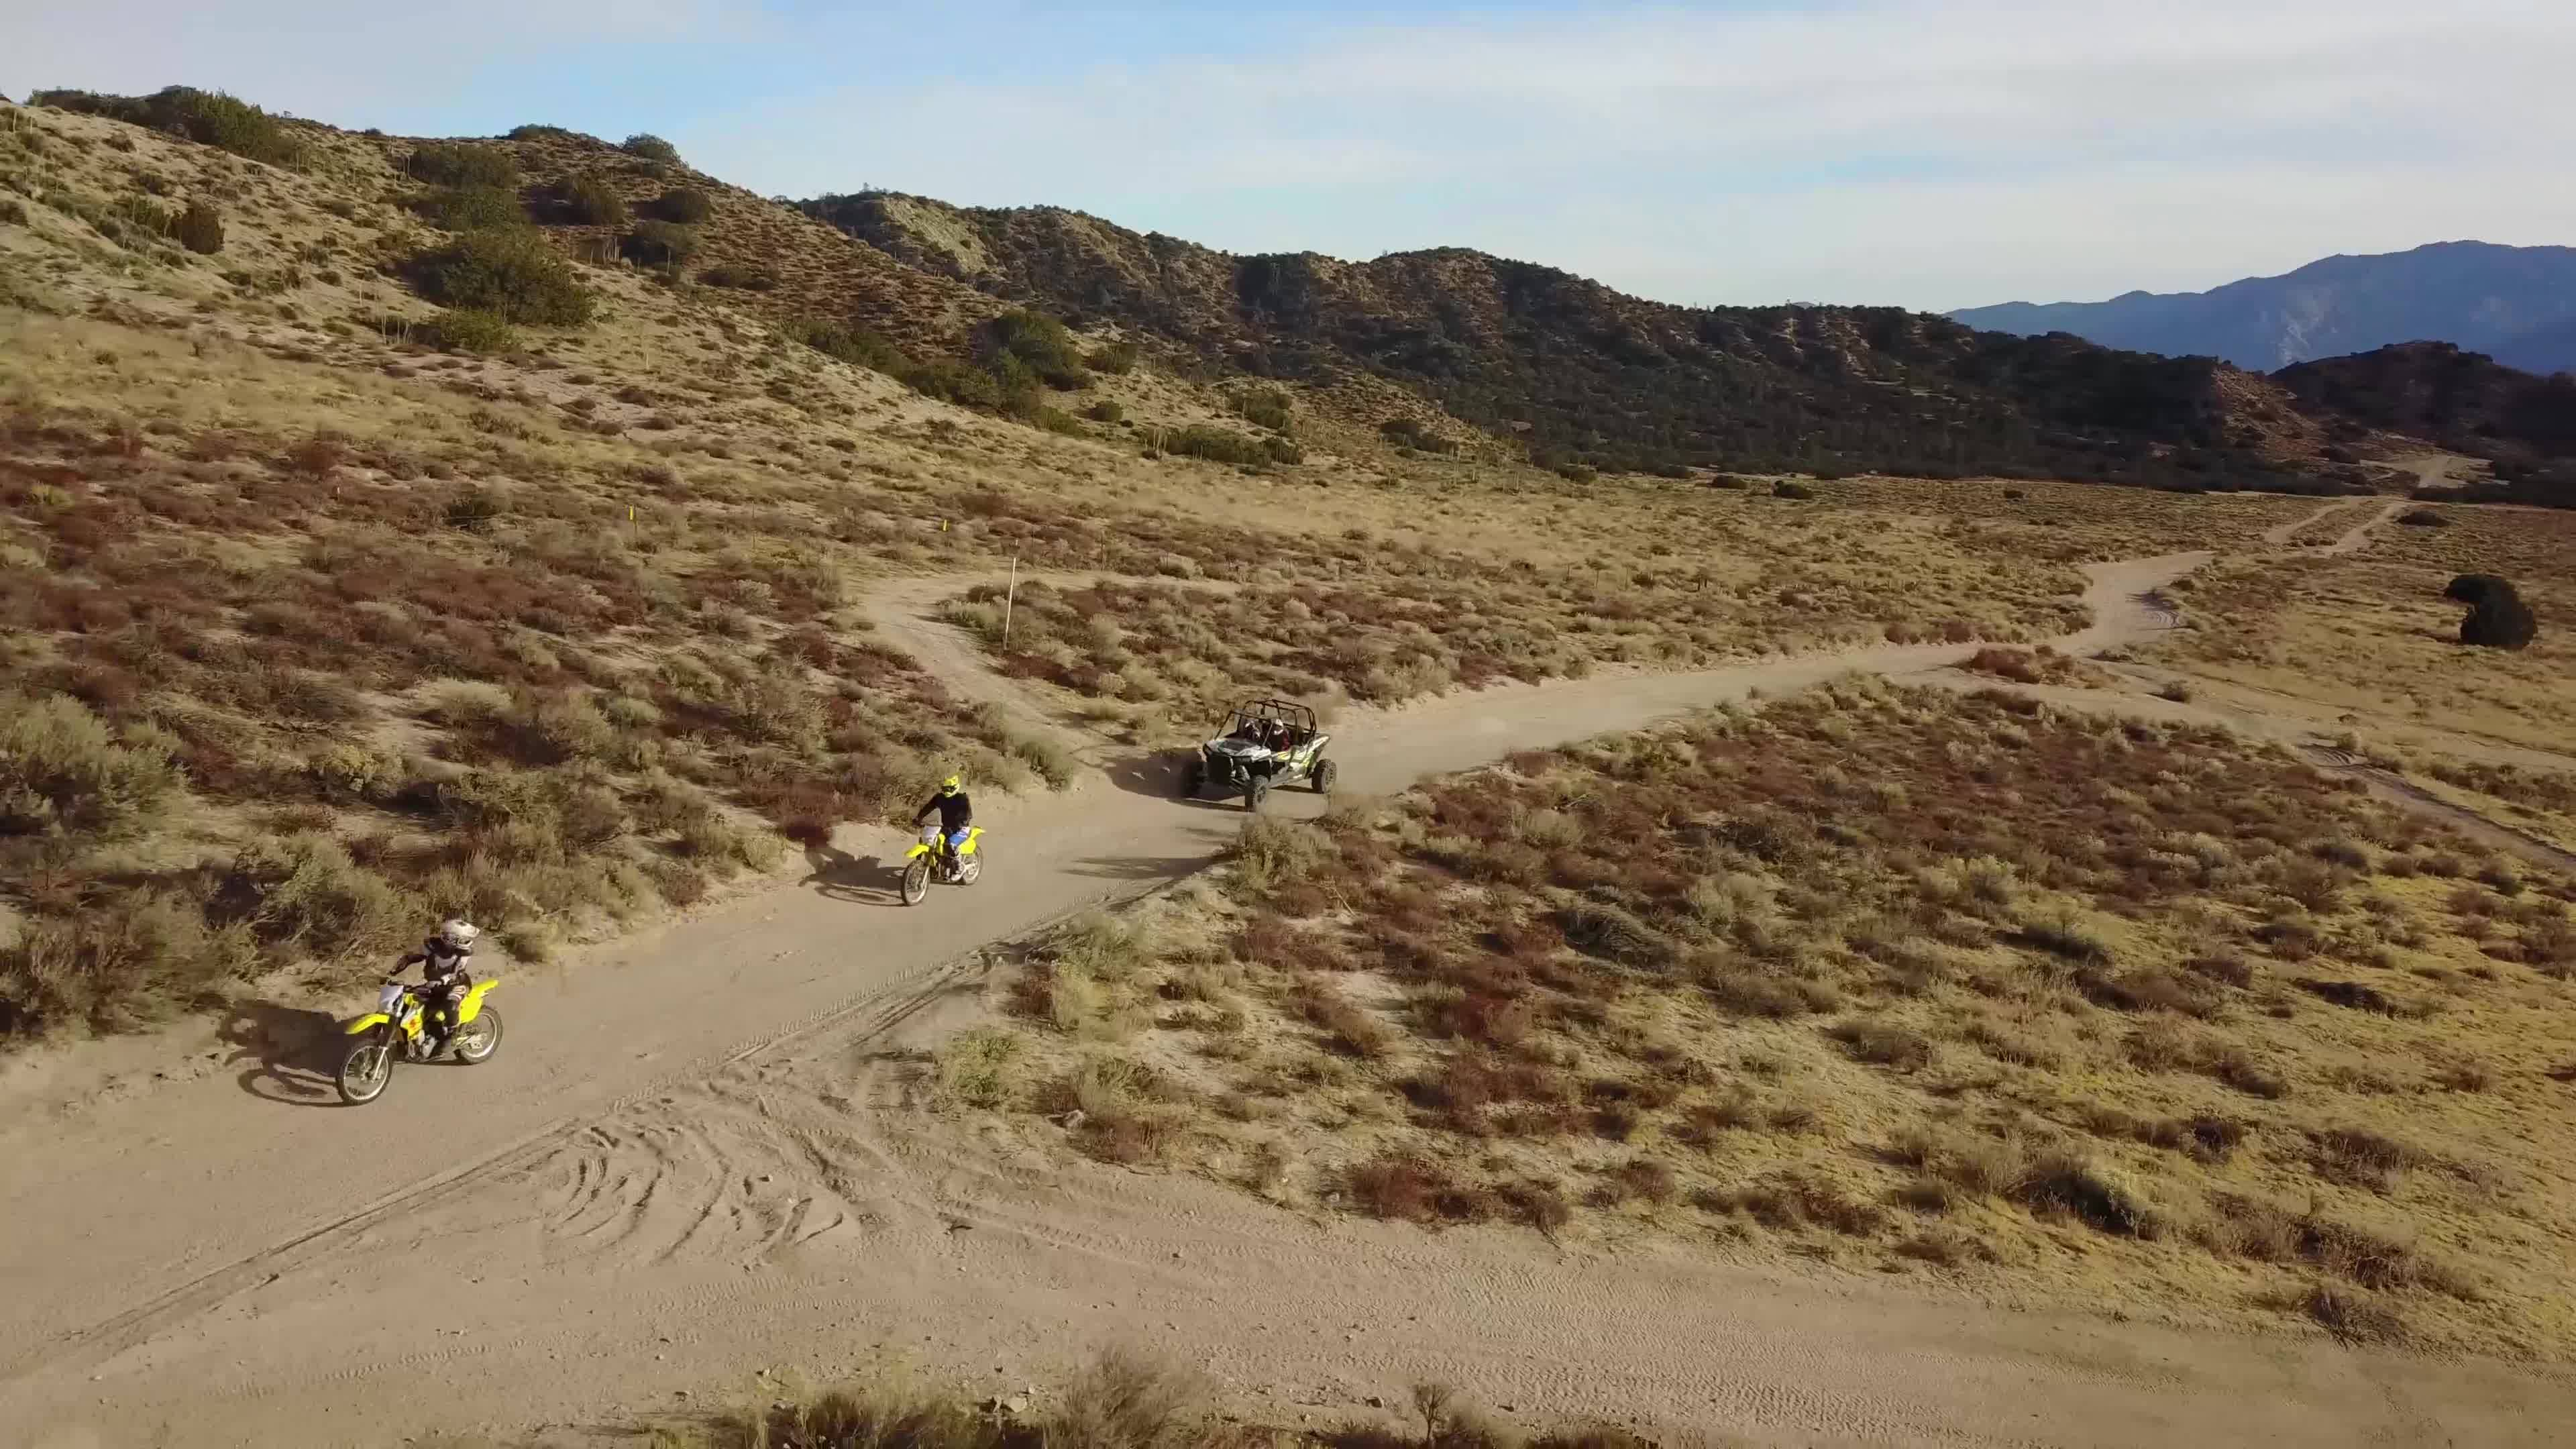 Off road dirt bike and RZR run